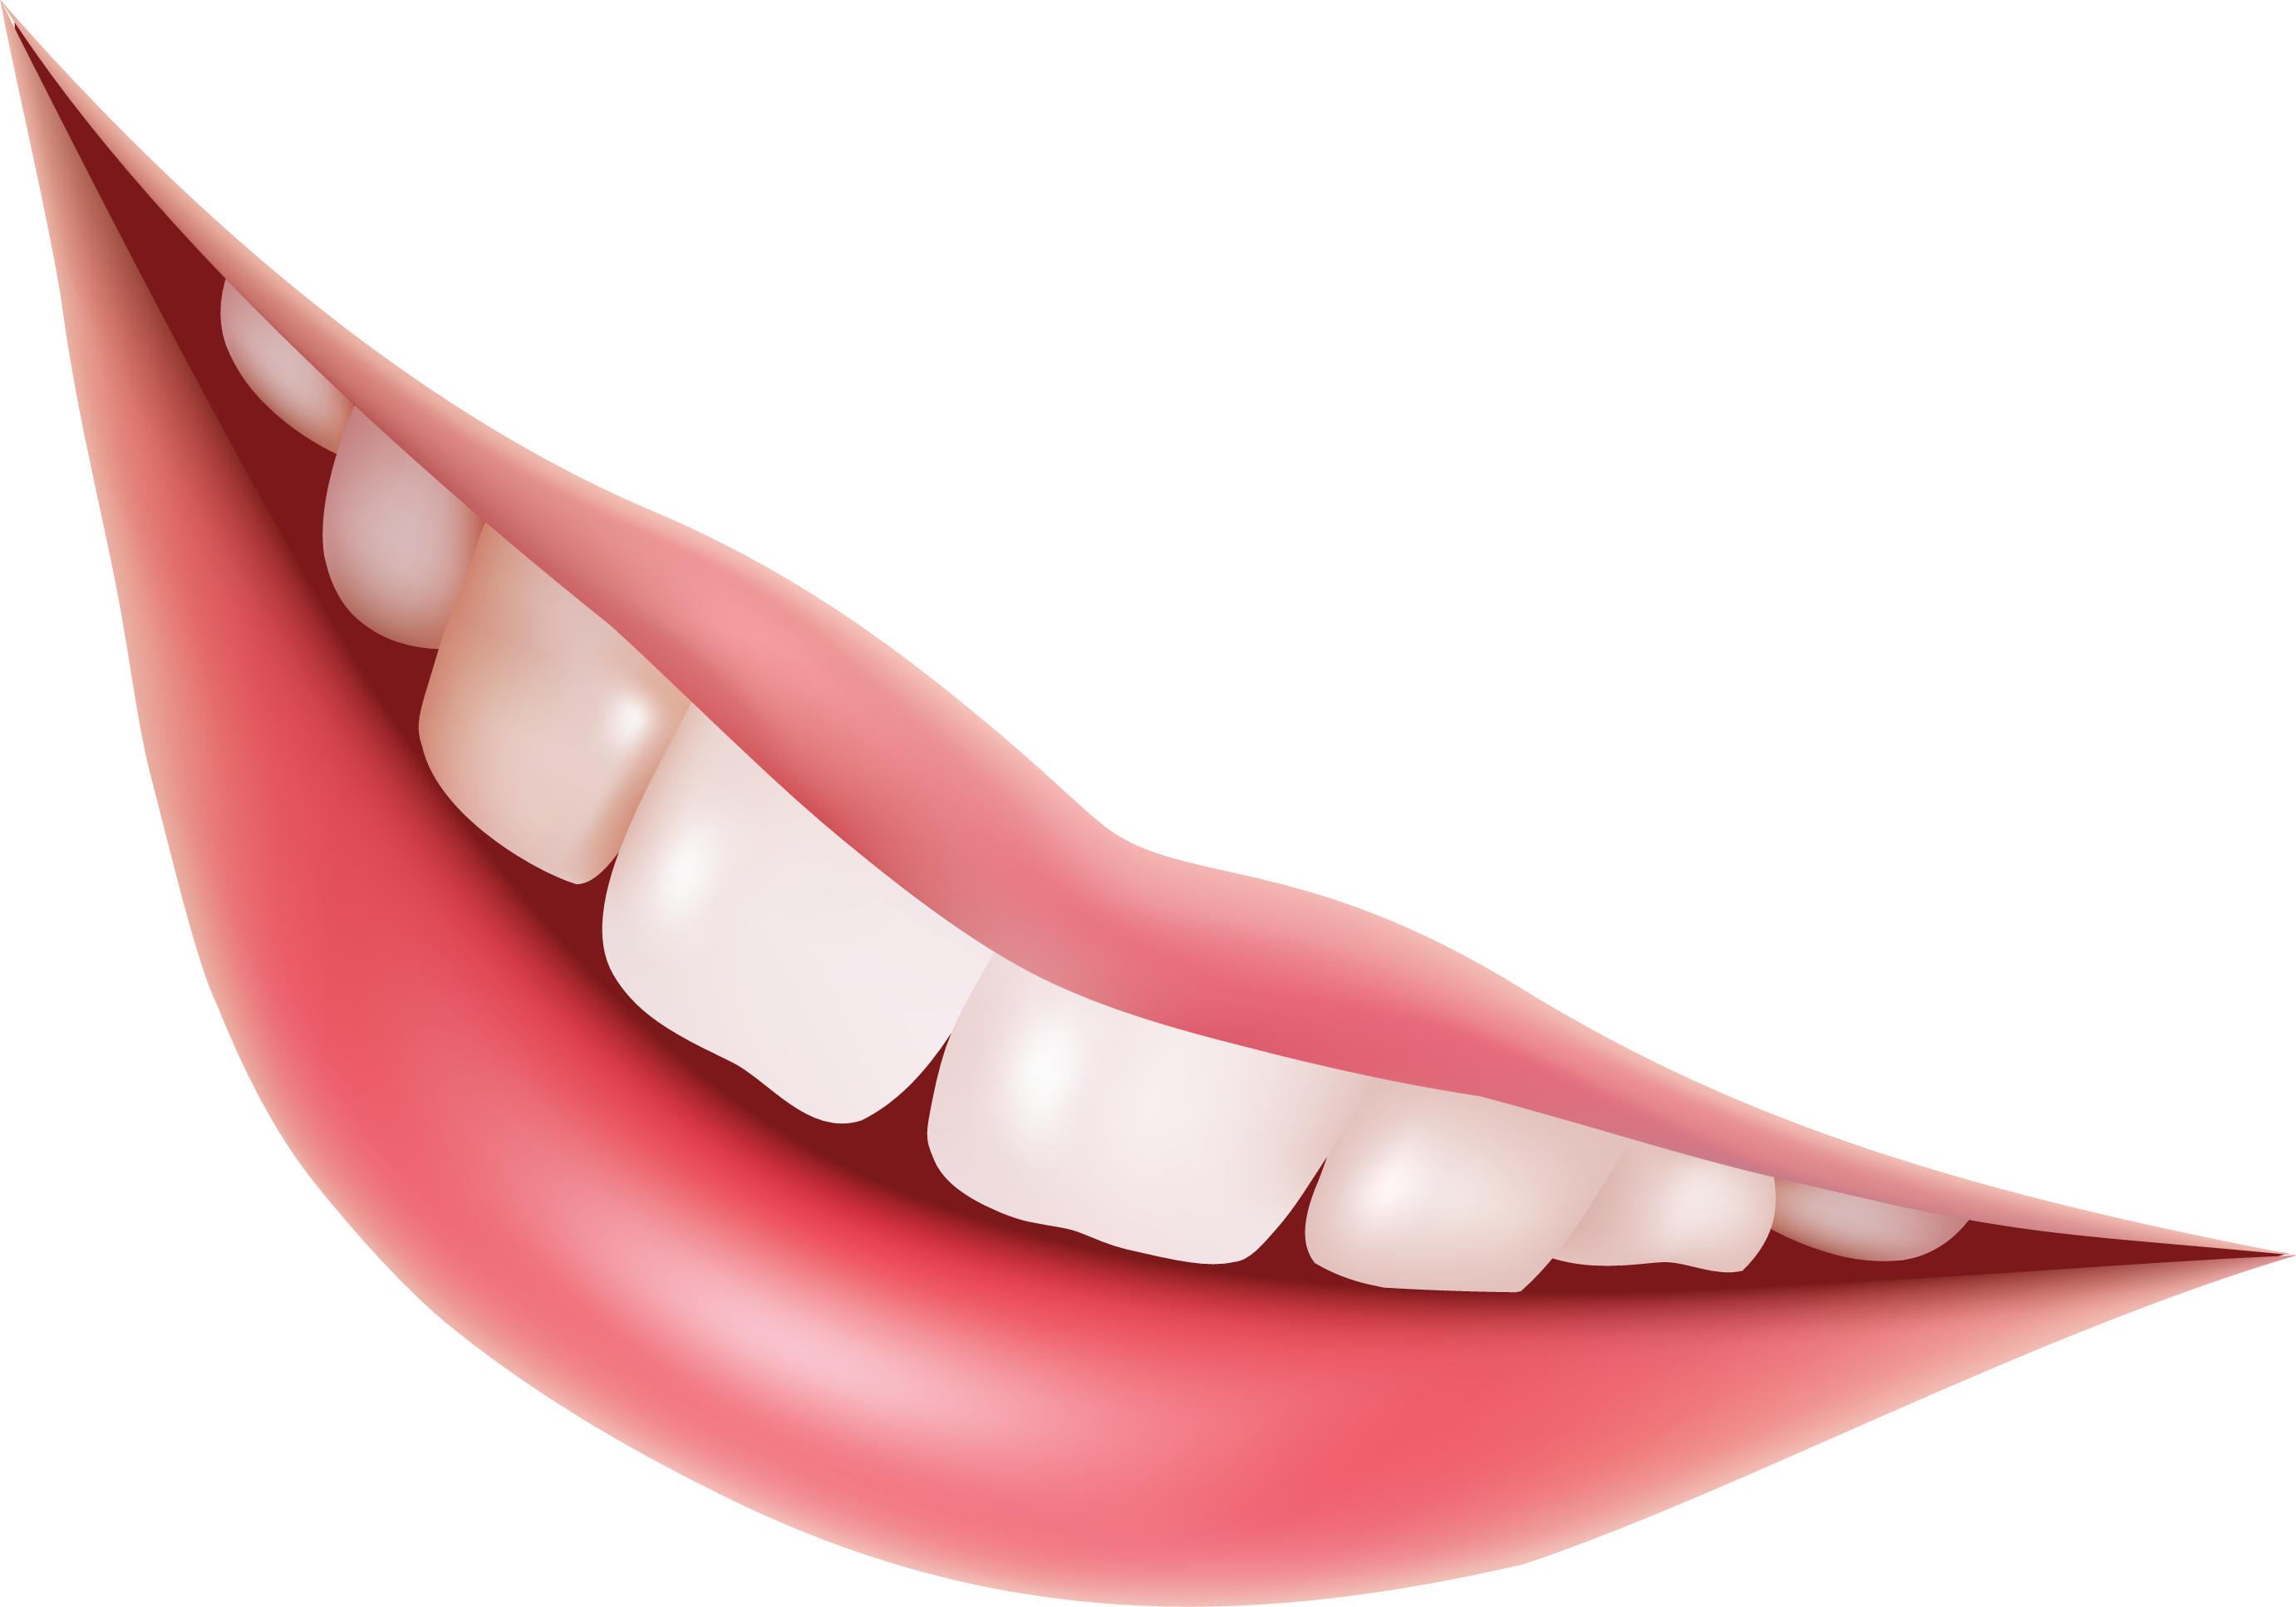 Download this high resolution Teeth Icon